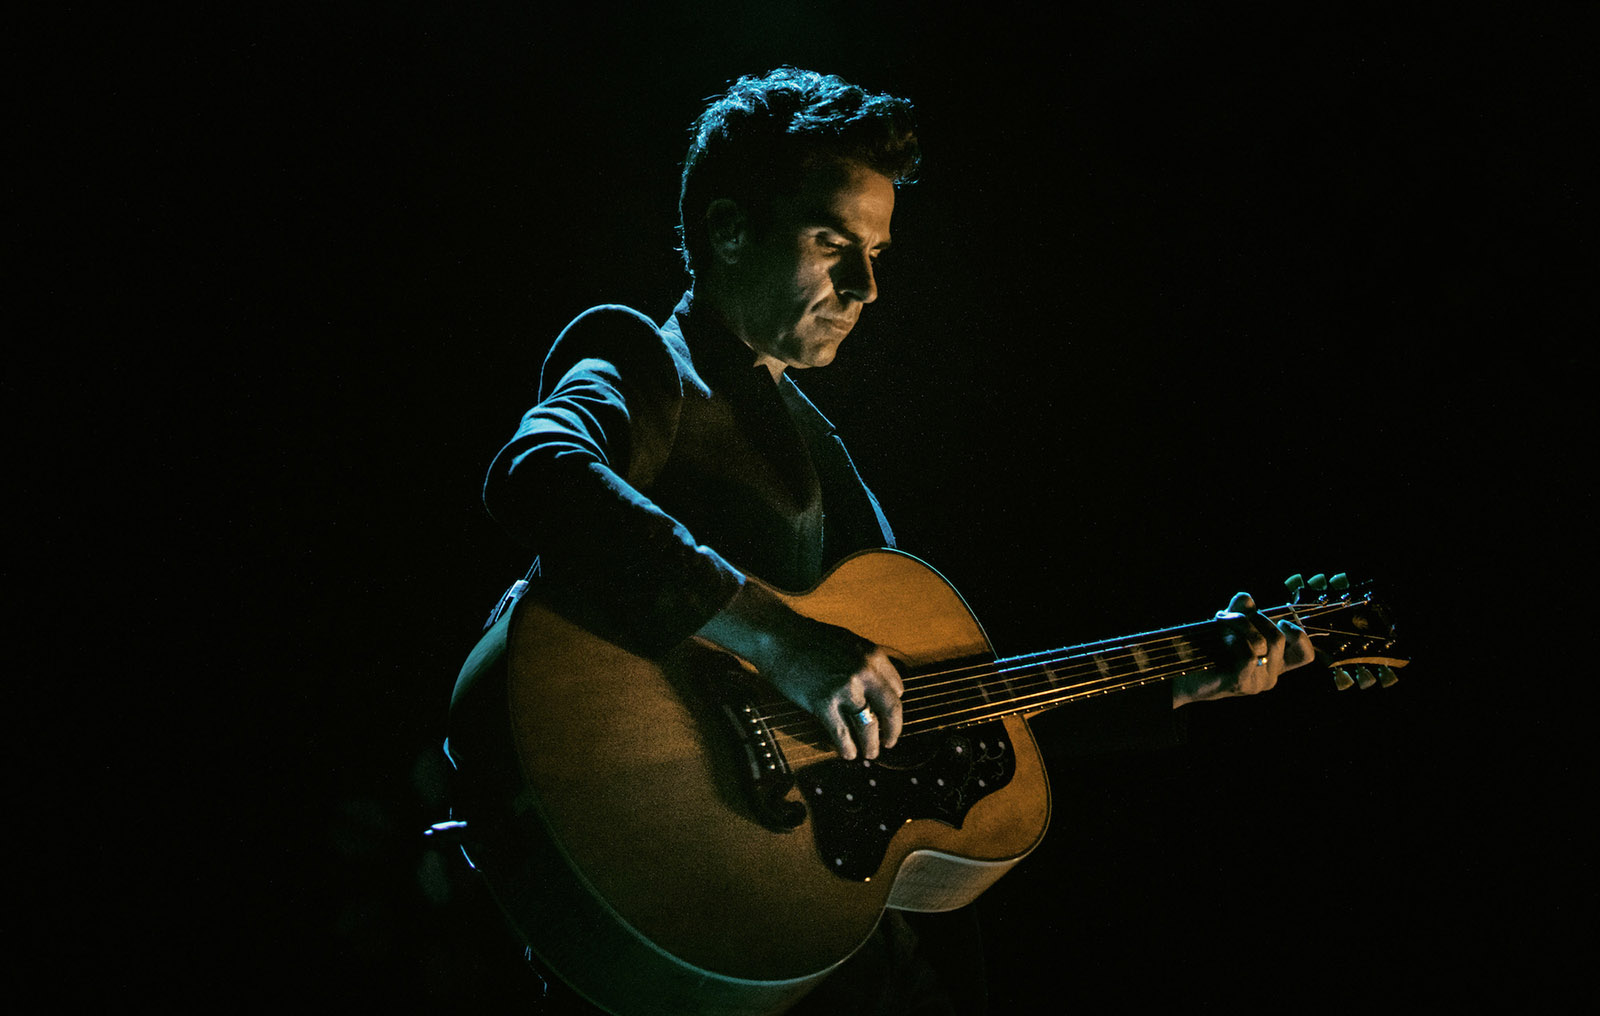 Stereophonics frontman Kelly Jones is the focus of new doc 'Don't Let the Devil Take Another Day' and it gives fans a chance to get to really know him.